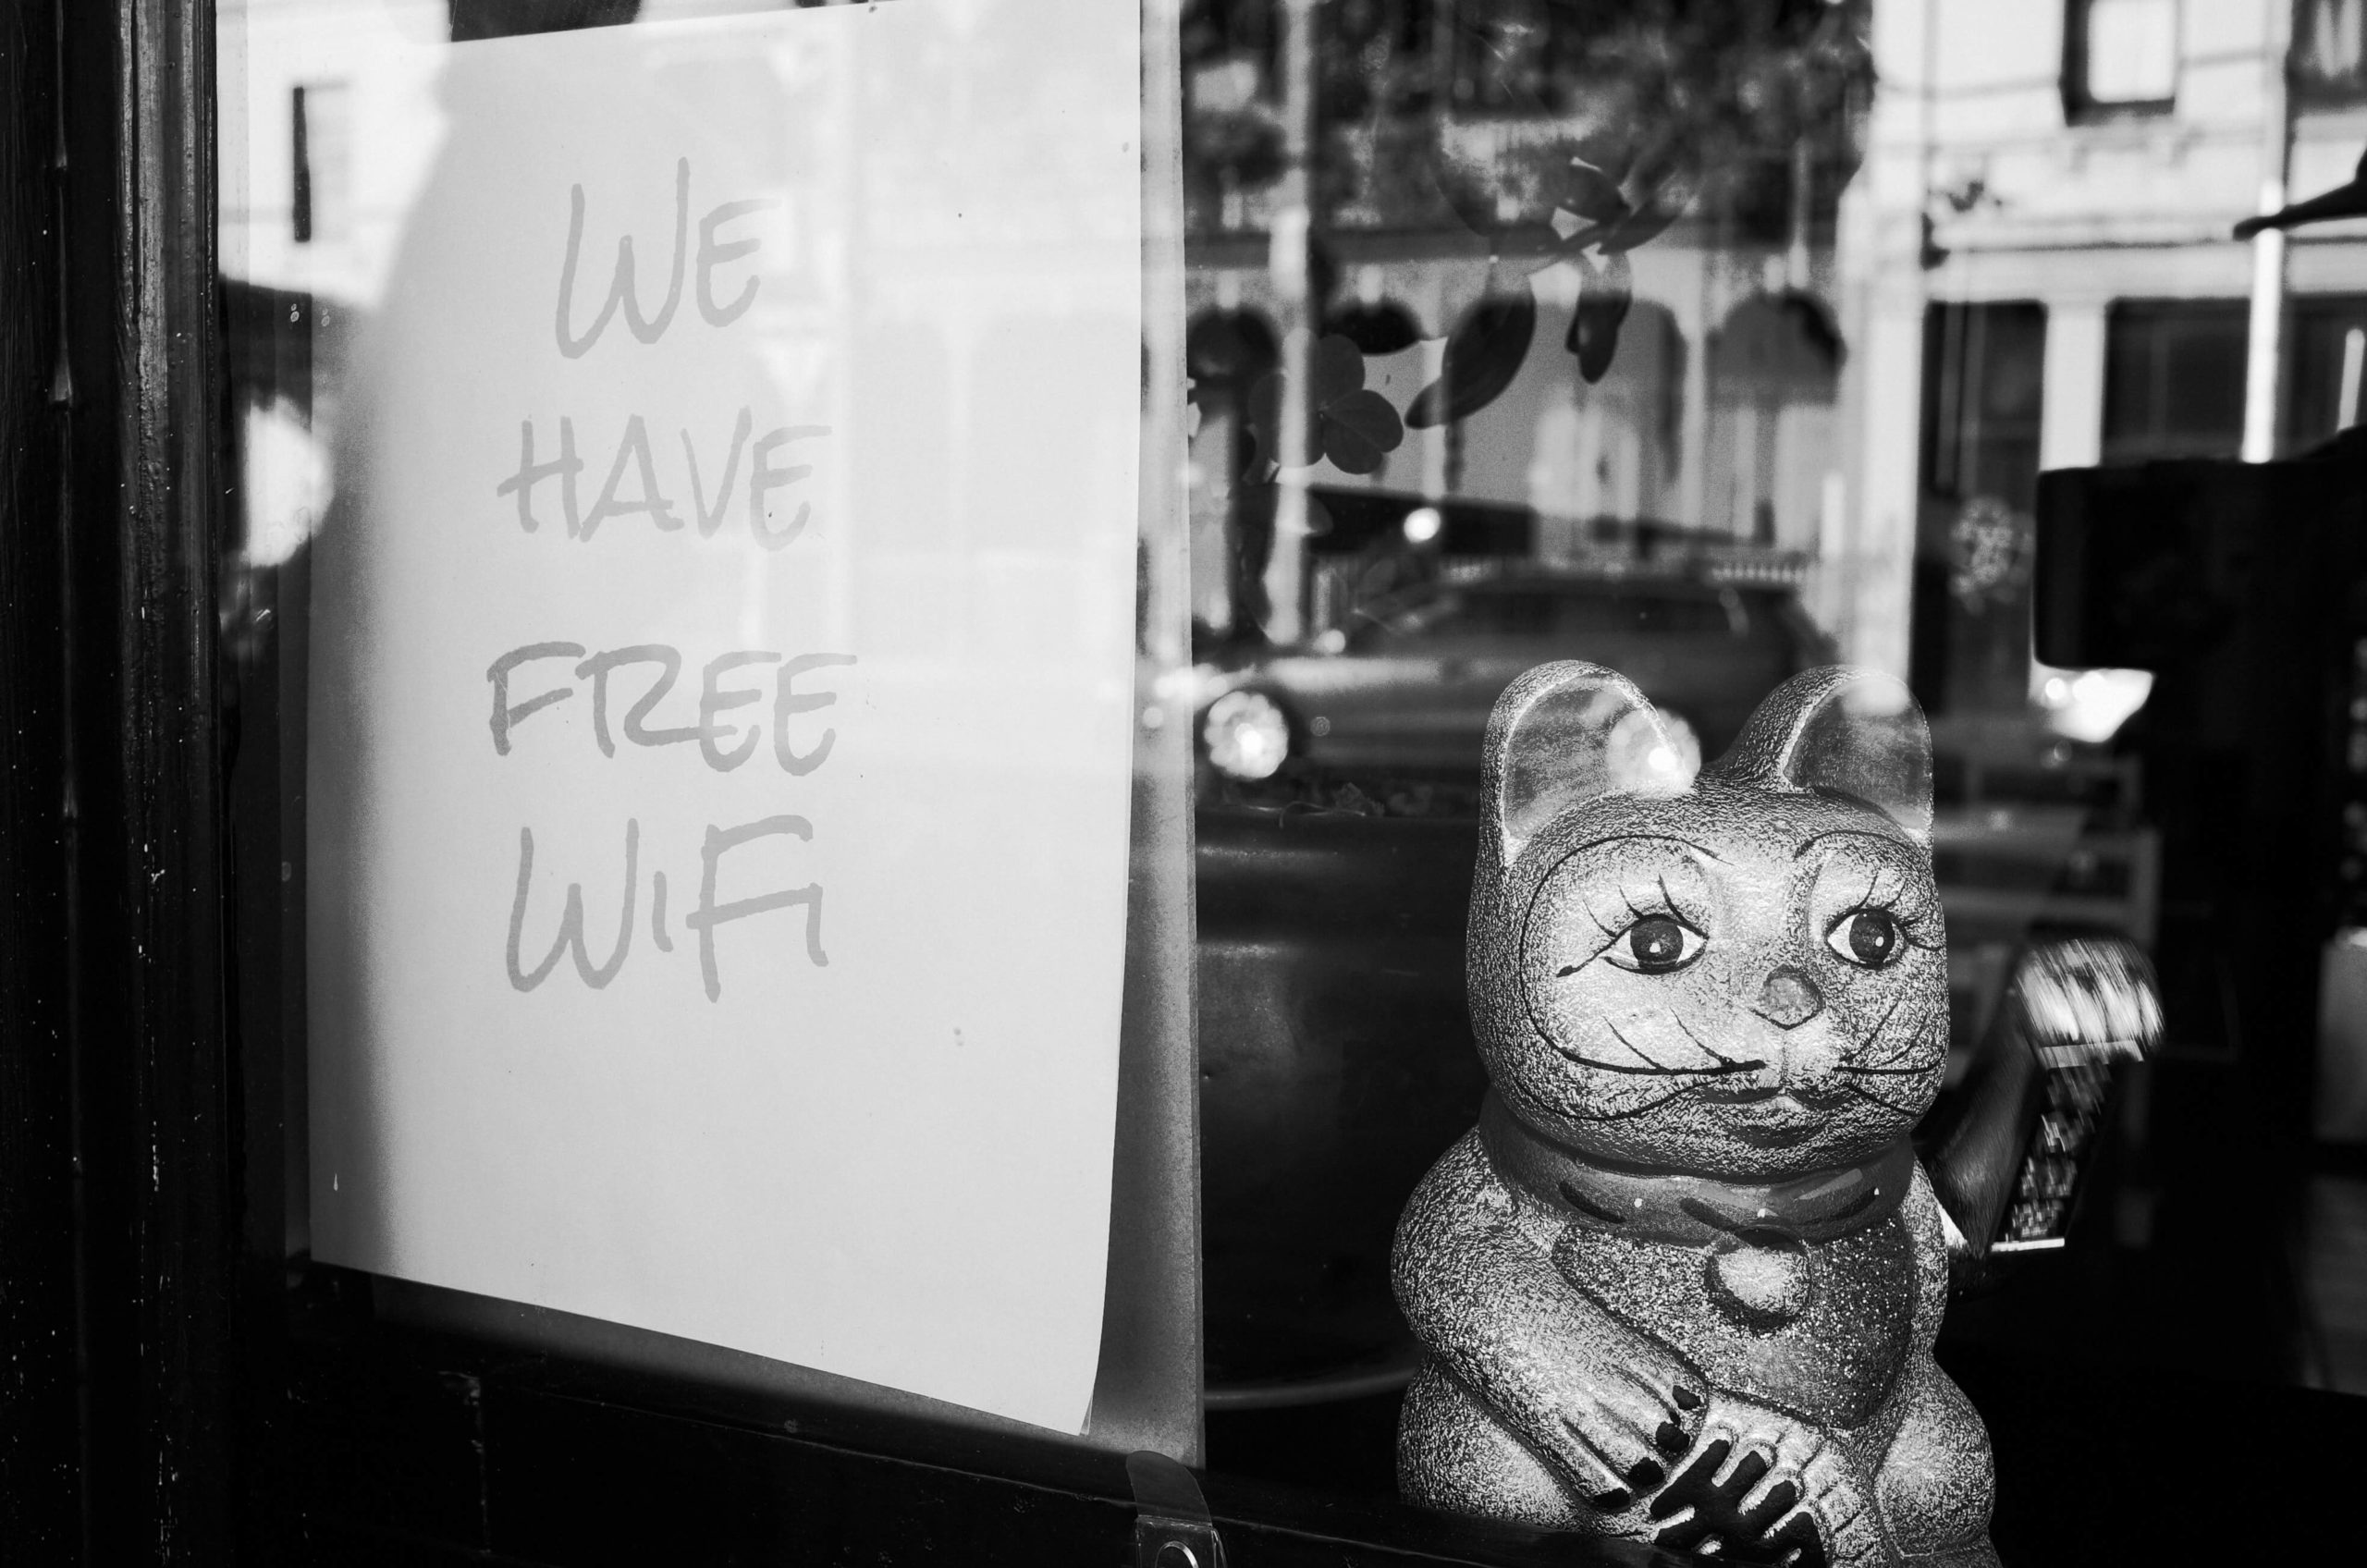 remote work meaning - free wi-fi